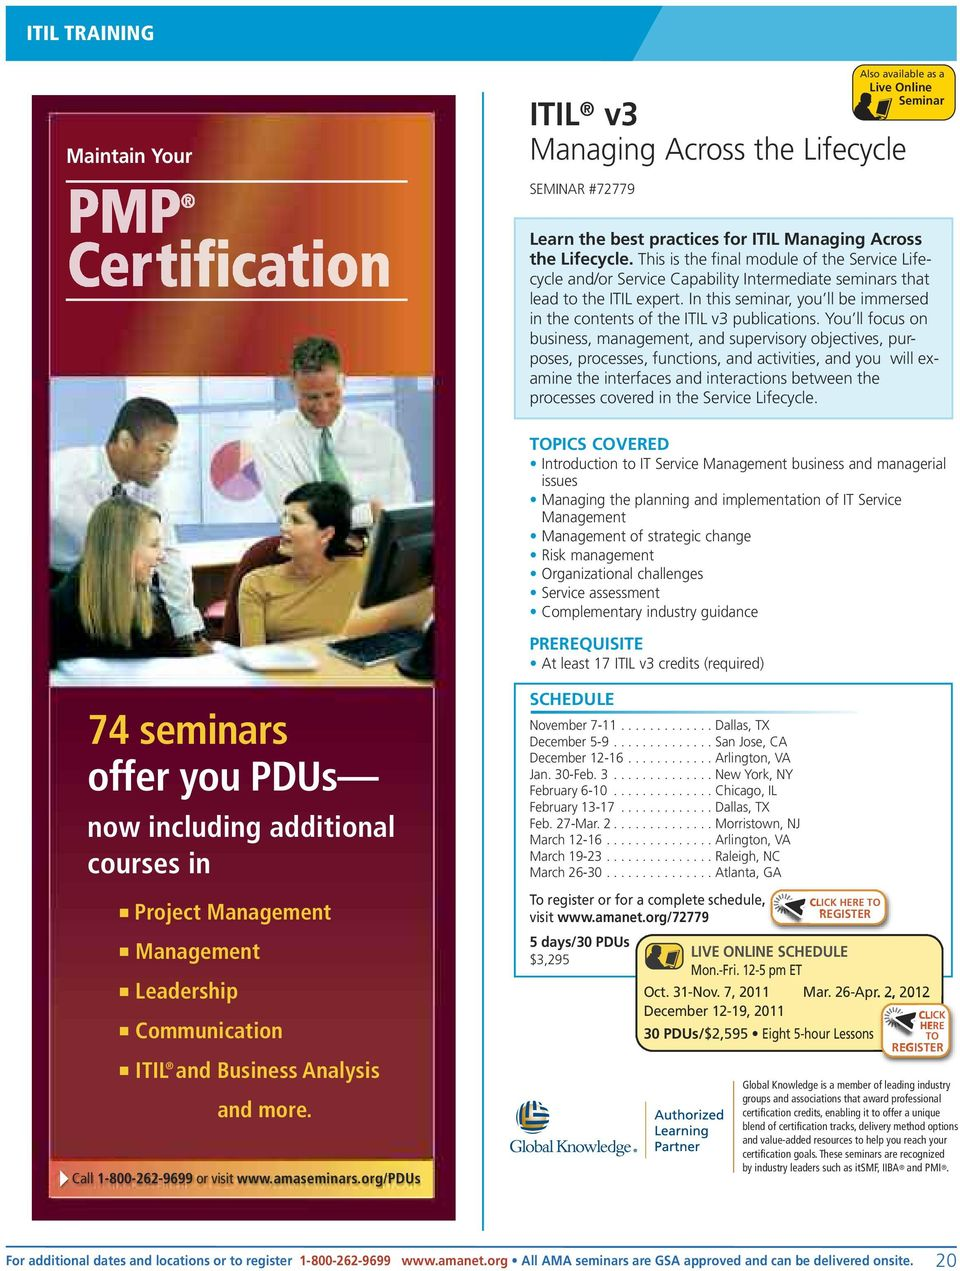 In this seminar, you ll be immersed in the contents of the ITIL v3 publications.